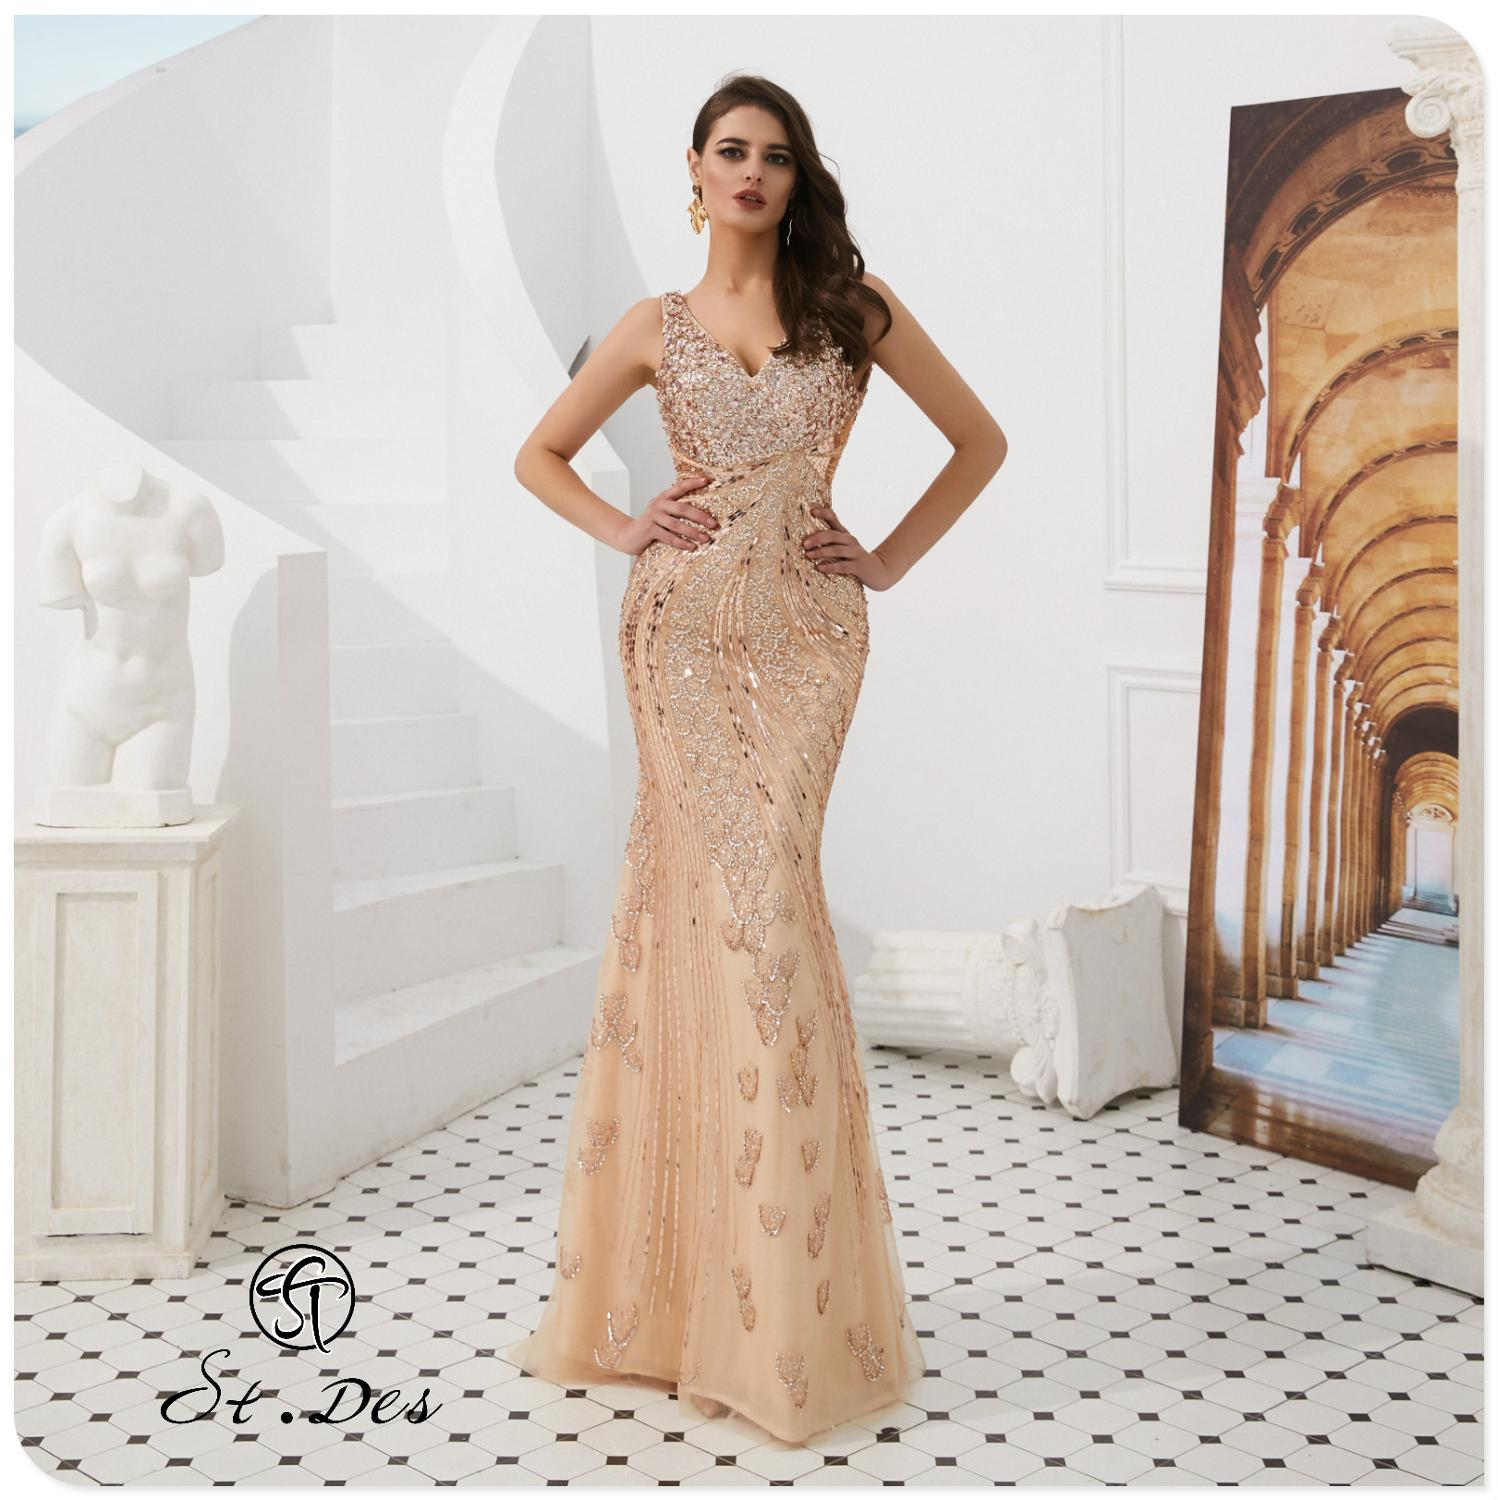 NEW Arrival 2020 St.Des Mermaid V-Neck Russian Champagne Sequins Designer Floor Length Evening Dress Party Dress Party Gown